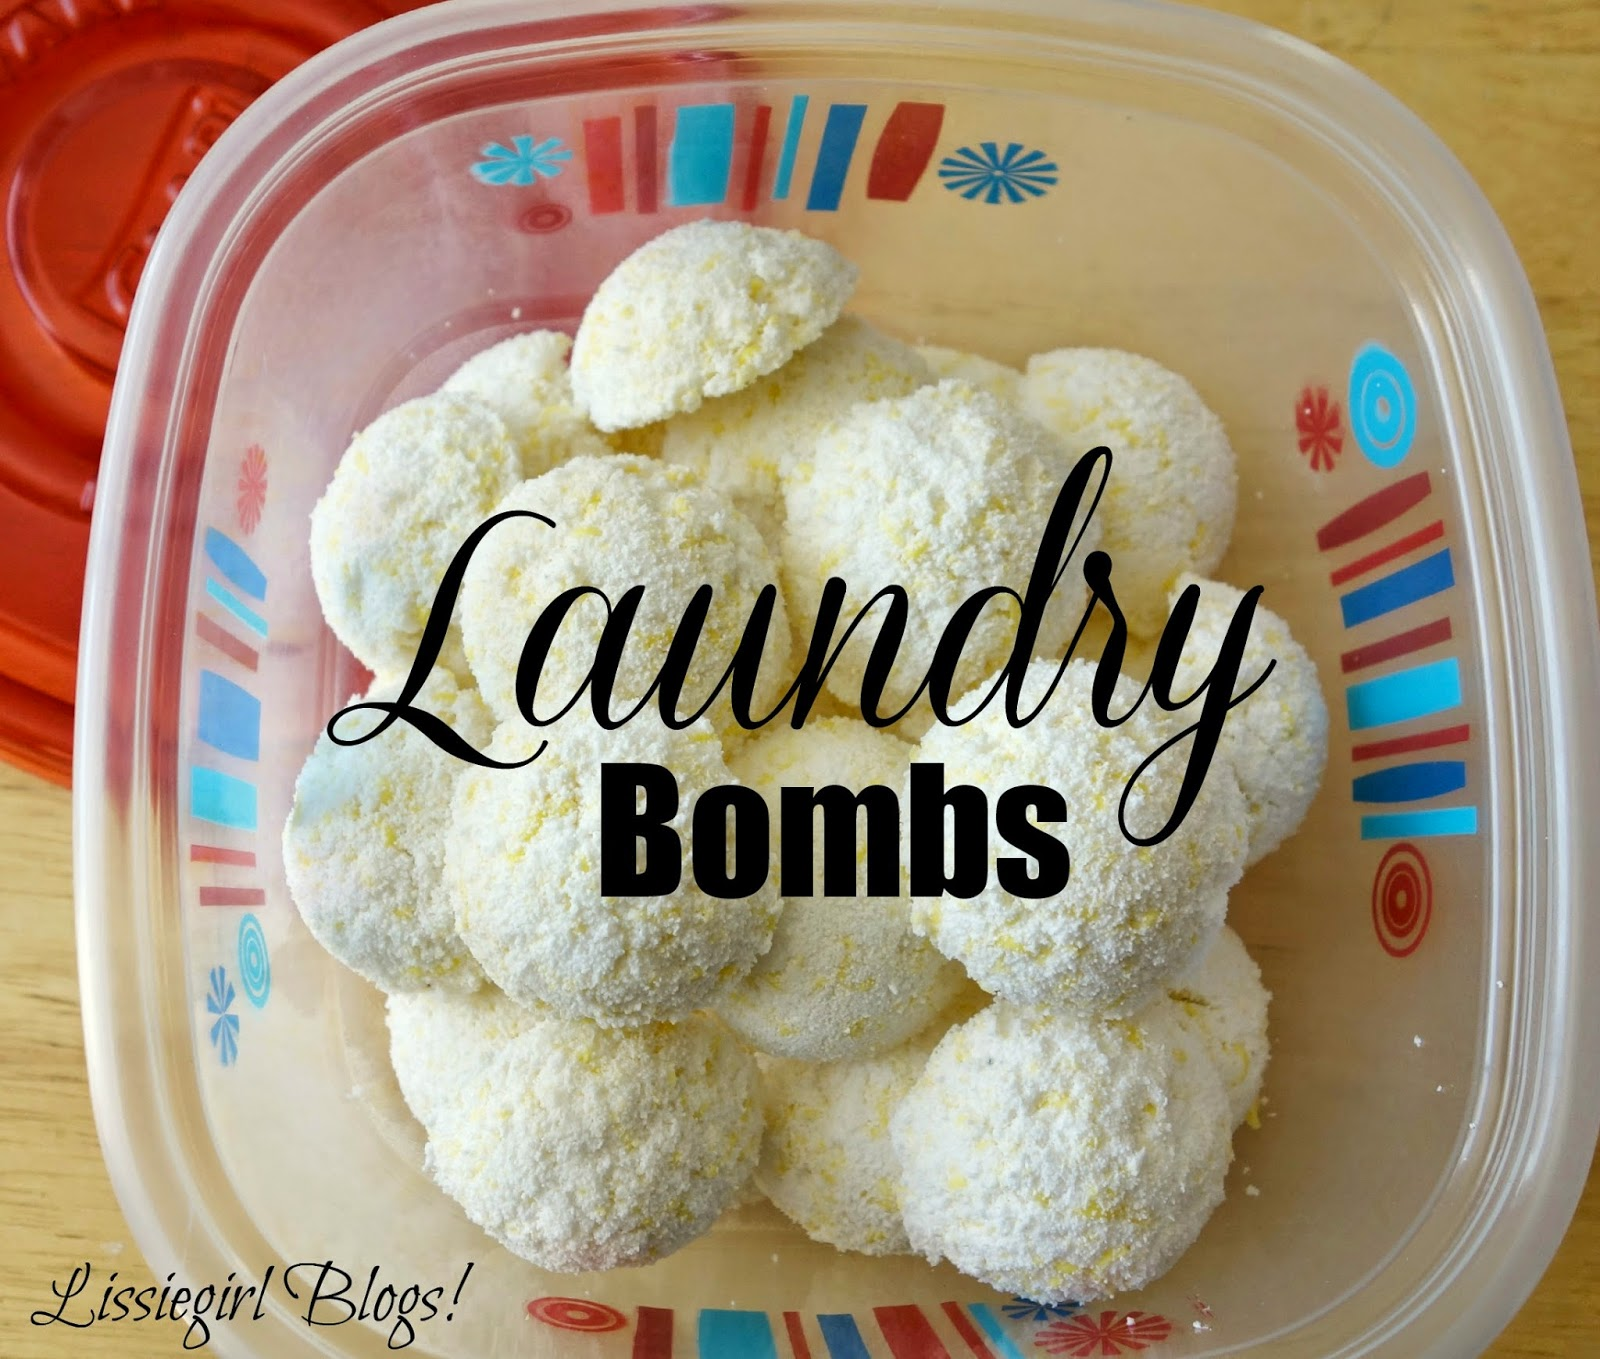 Frugal Friday Episode I: Laundry Bombs